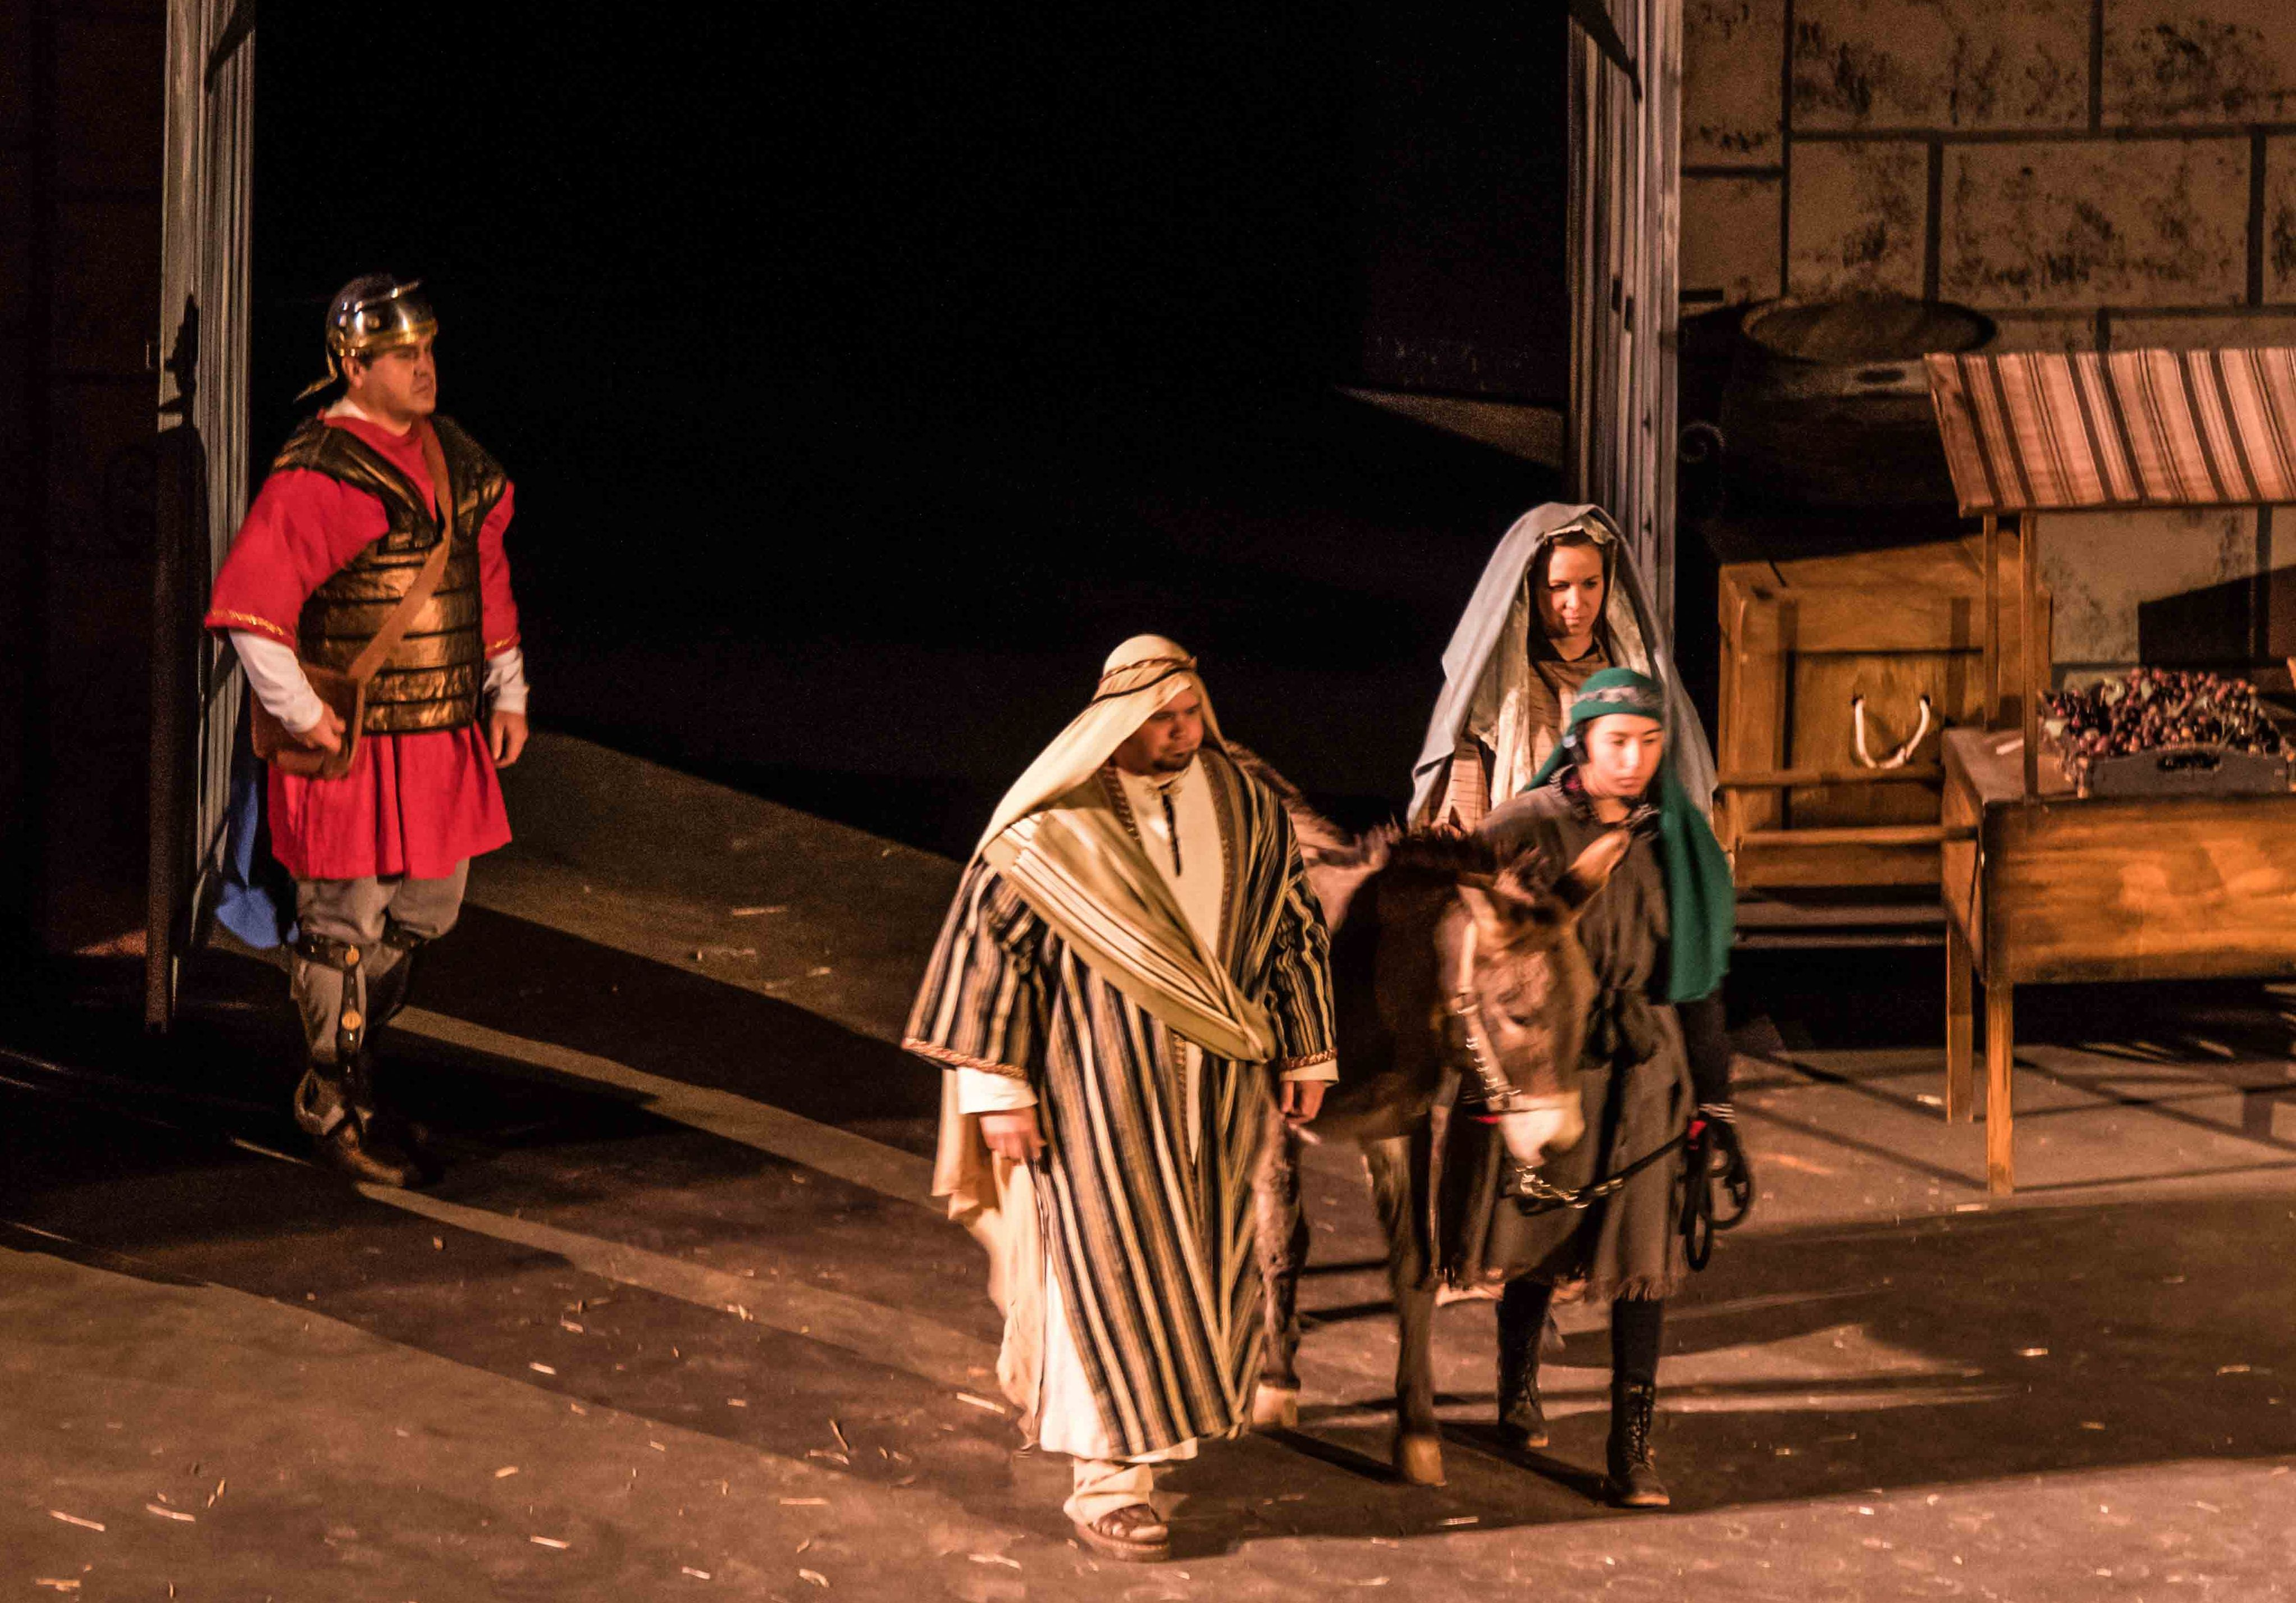 Mary and Joseph entering the gates of Bethlehem during the Tuacahn Live Nativity. Ivins, Utah, Dec. 5, 2016   Photo courtesy of Jim Lillywhite, St. George News